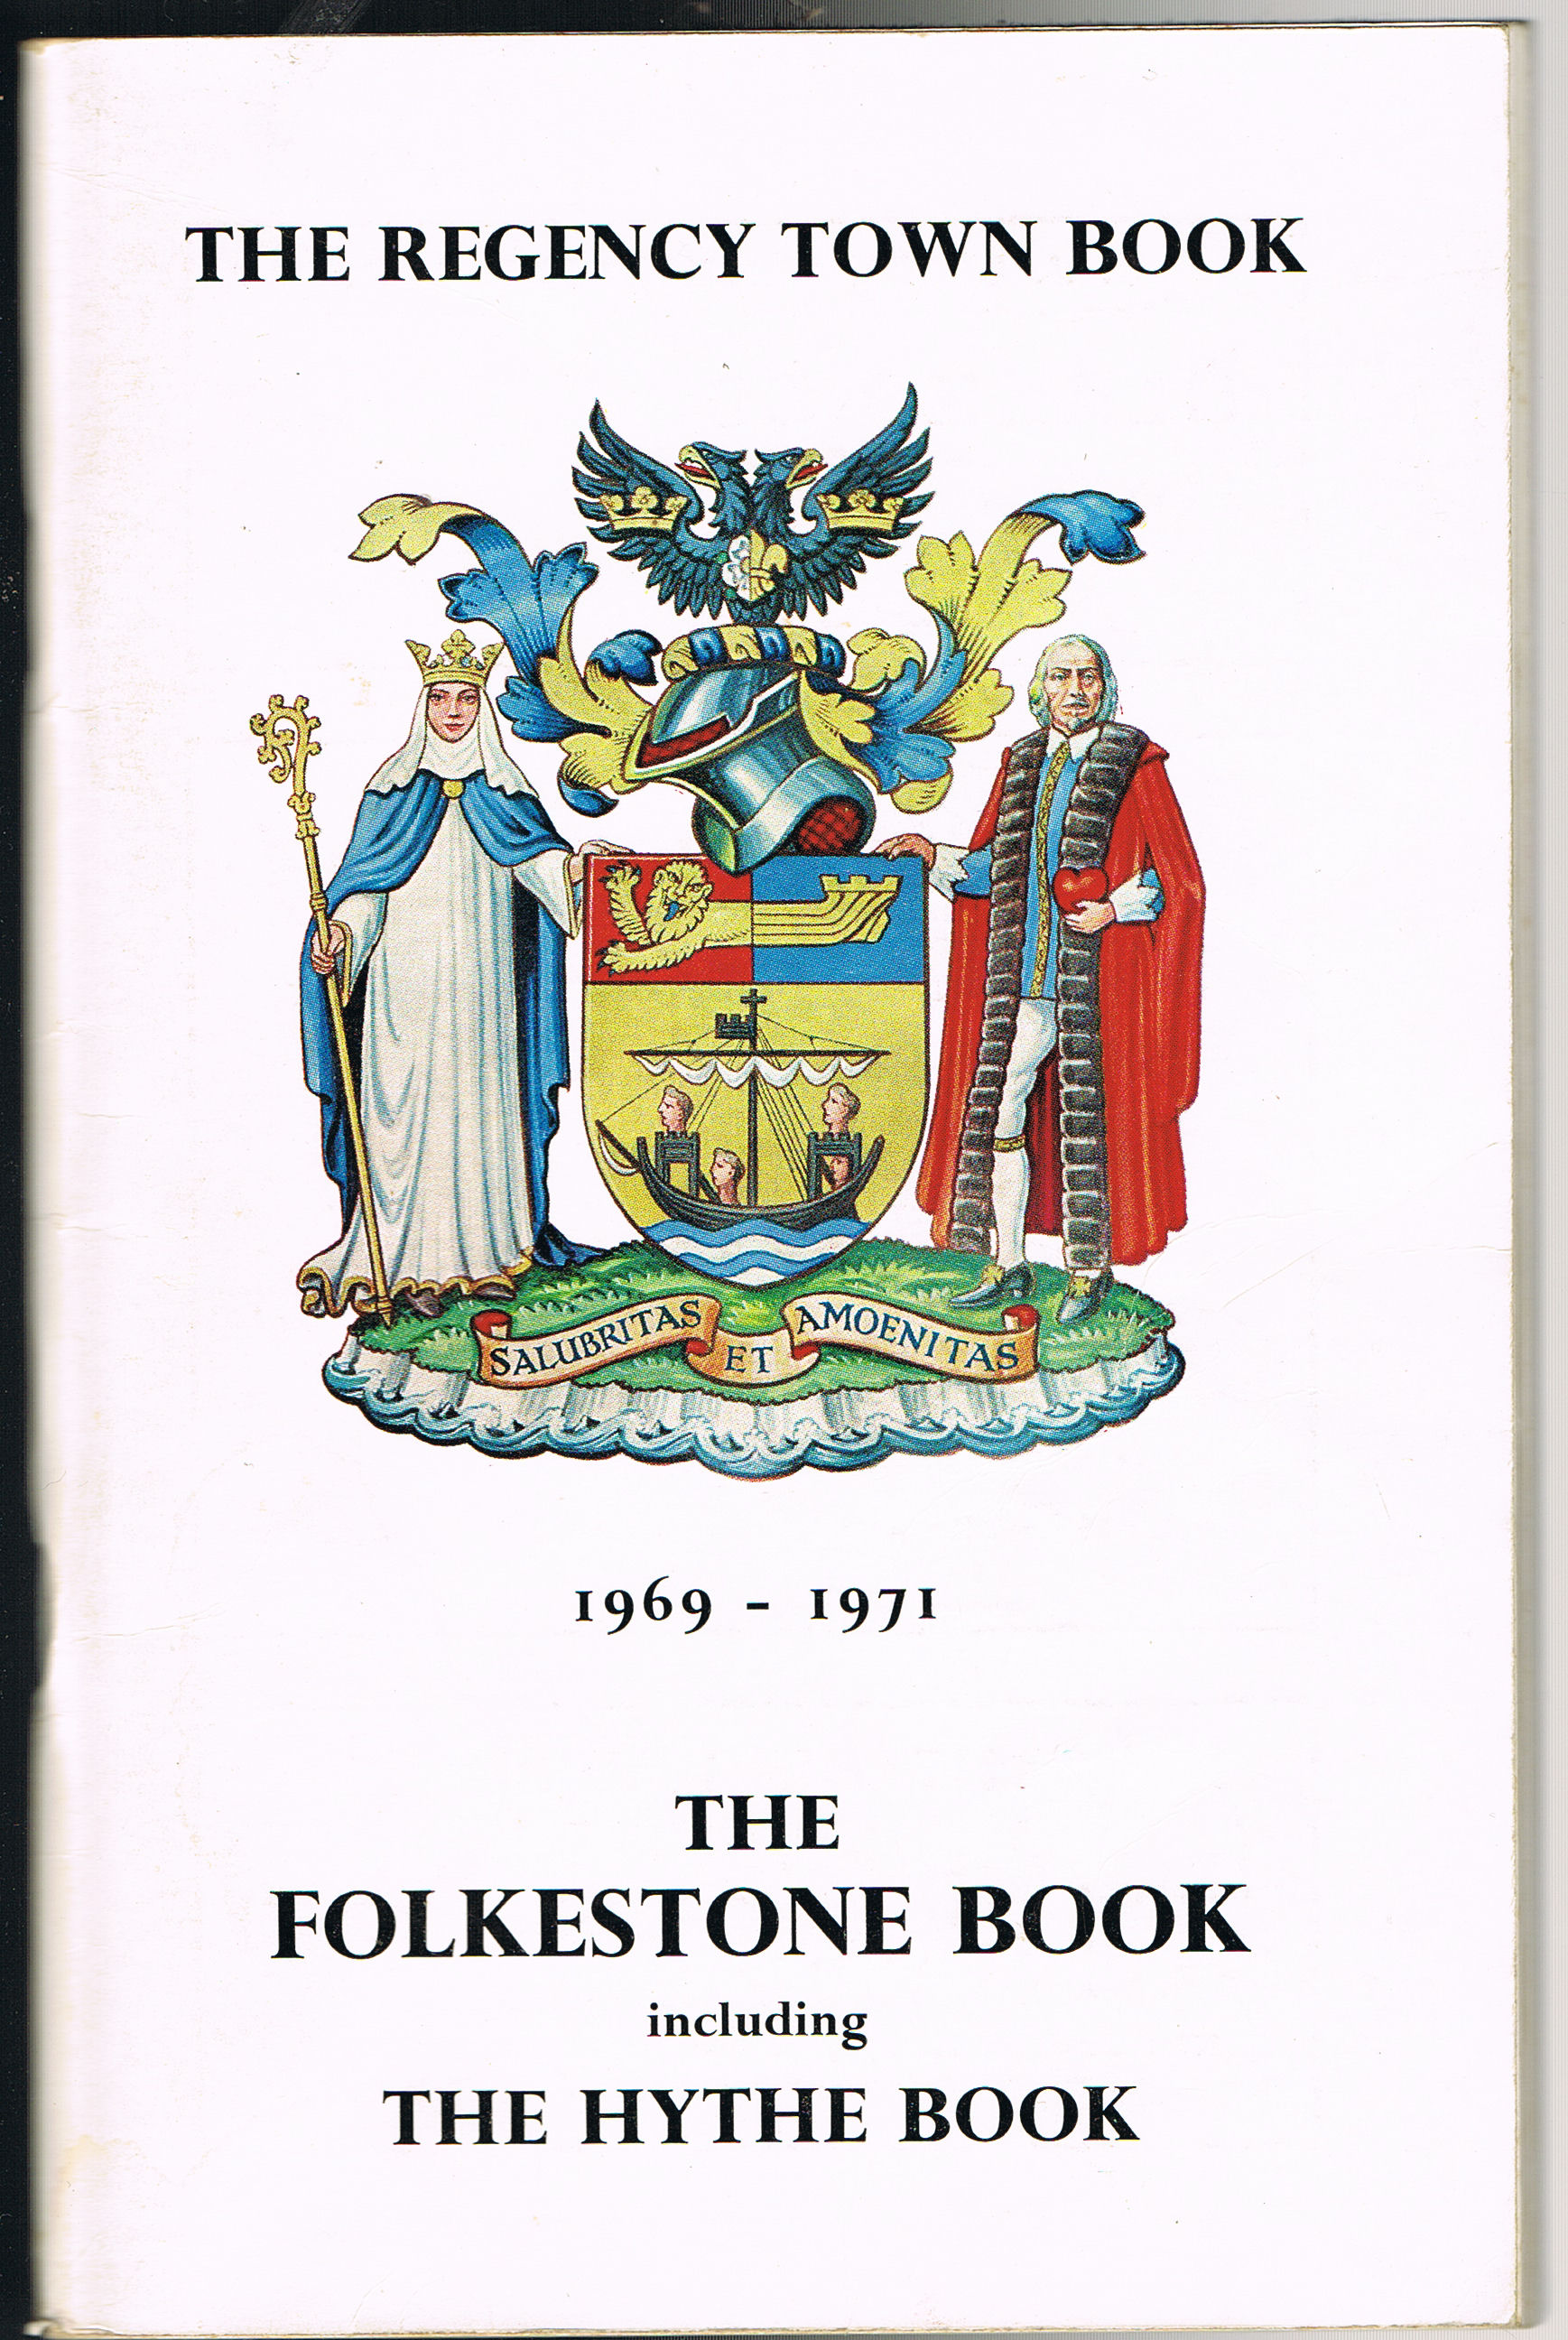 Image for The Folkestone Book Including the Hythe Book 1969-1971 (The Regency Town Book)